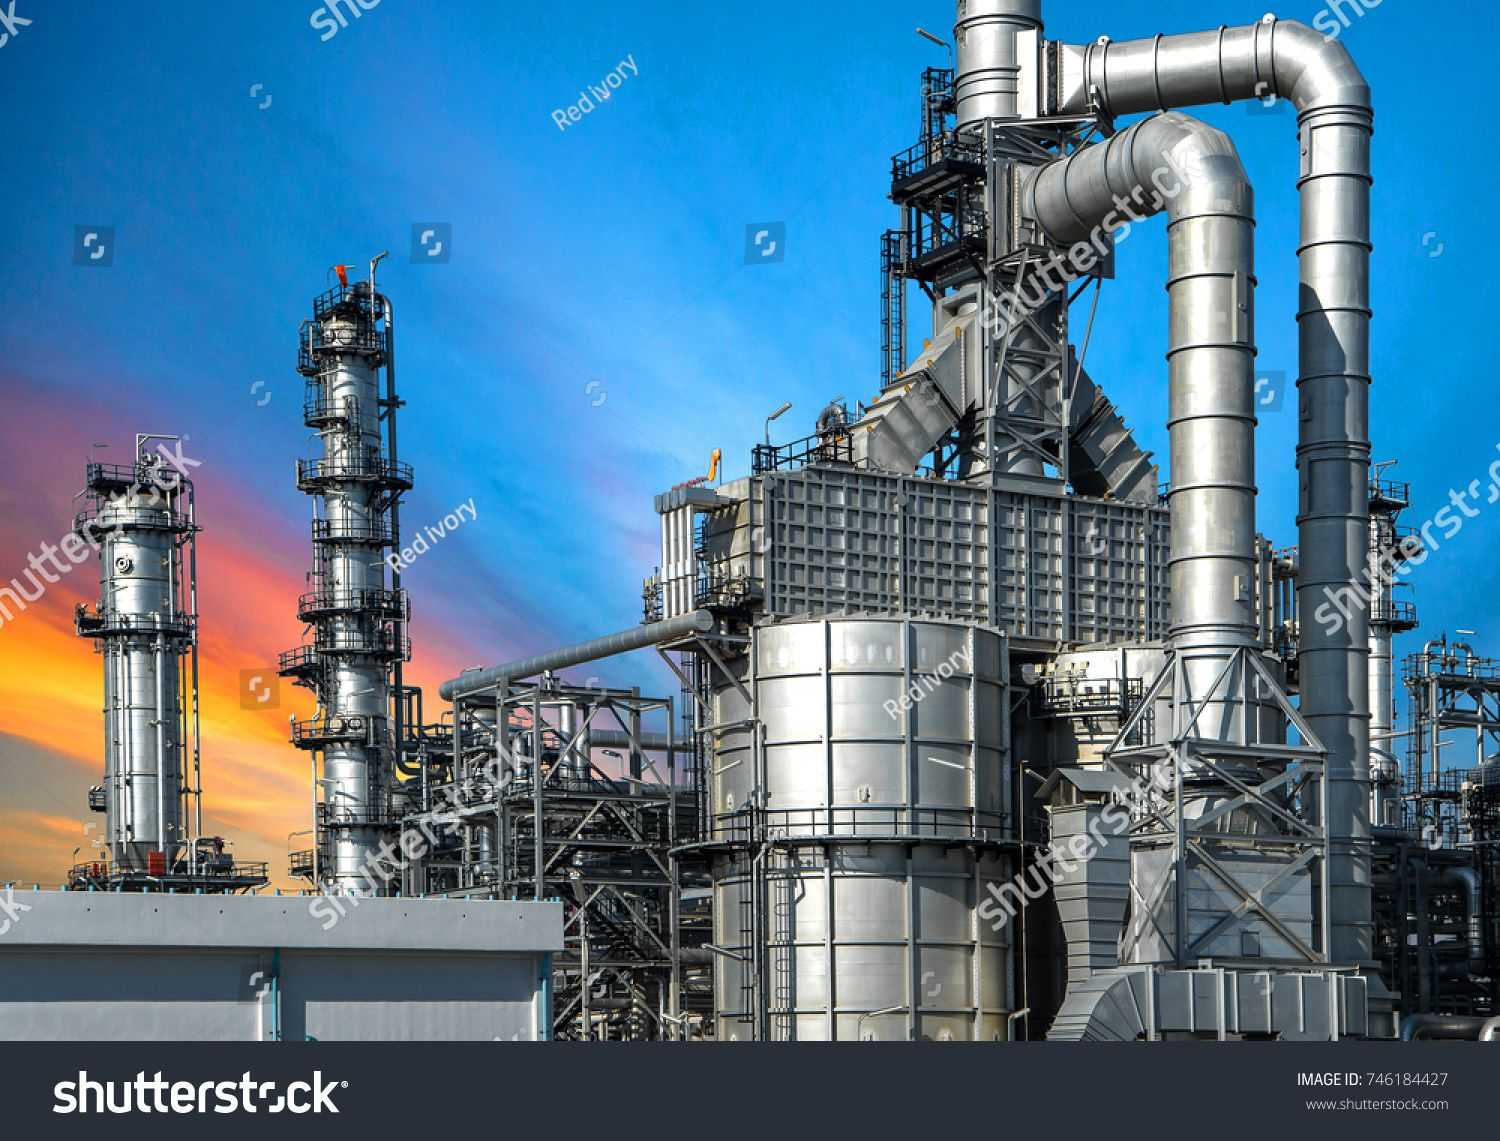 Close Up Oil And Gas Refinery Factory At Sunset Industrial Petrochemical Plant Sponsored Affiliate Gas With Images Social Media Graphics Image Refinery Oil And Gas